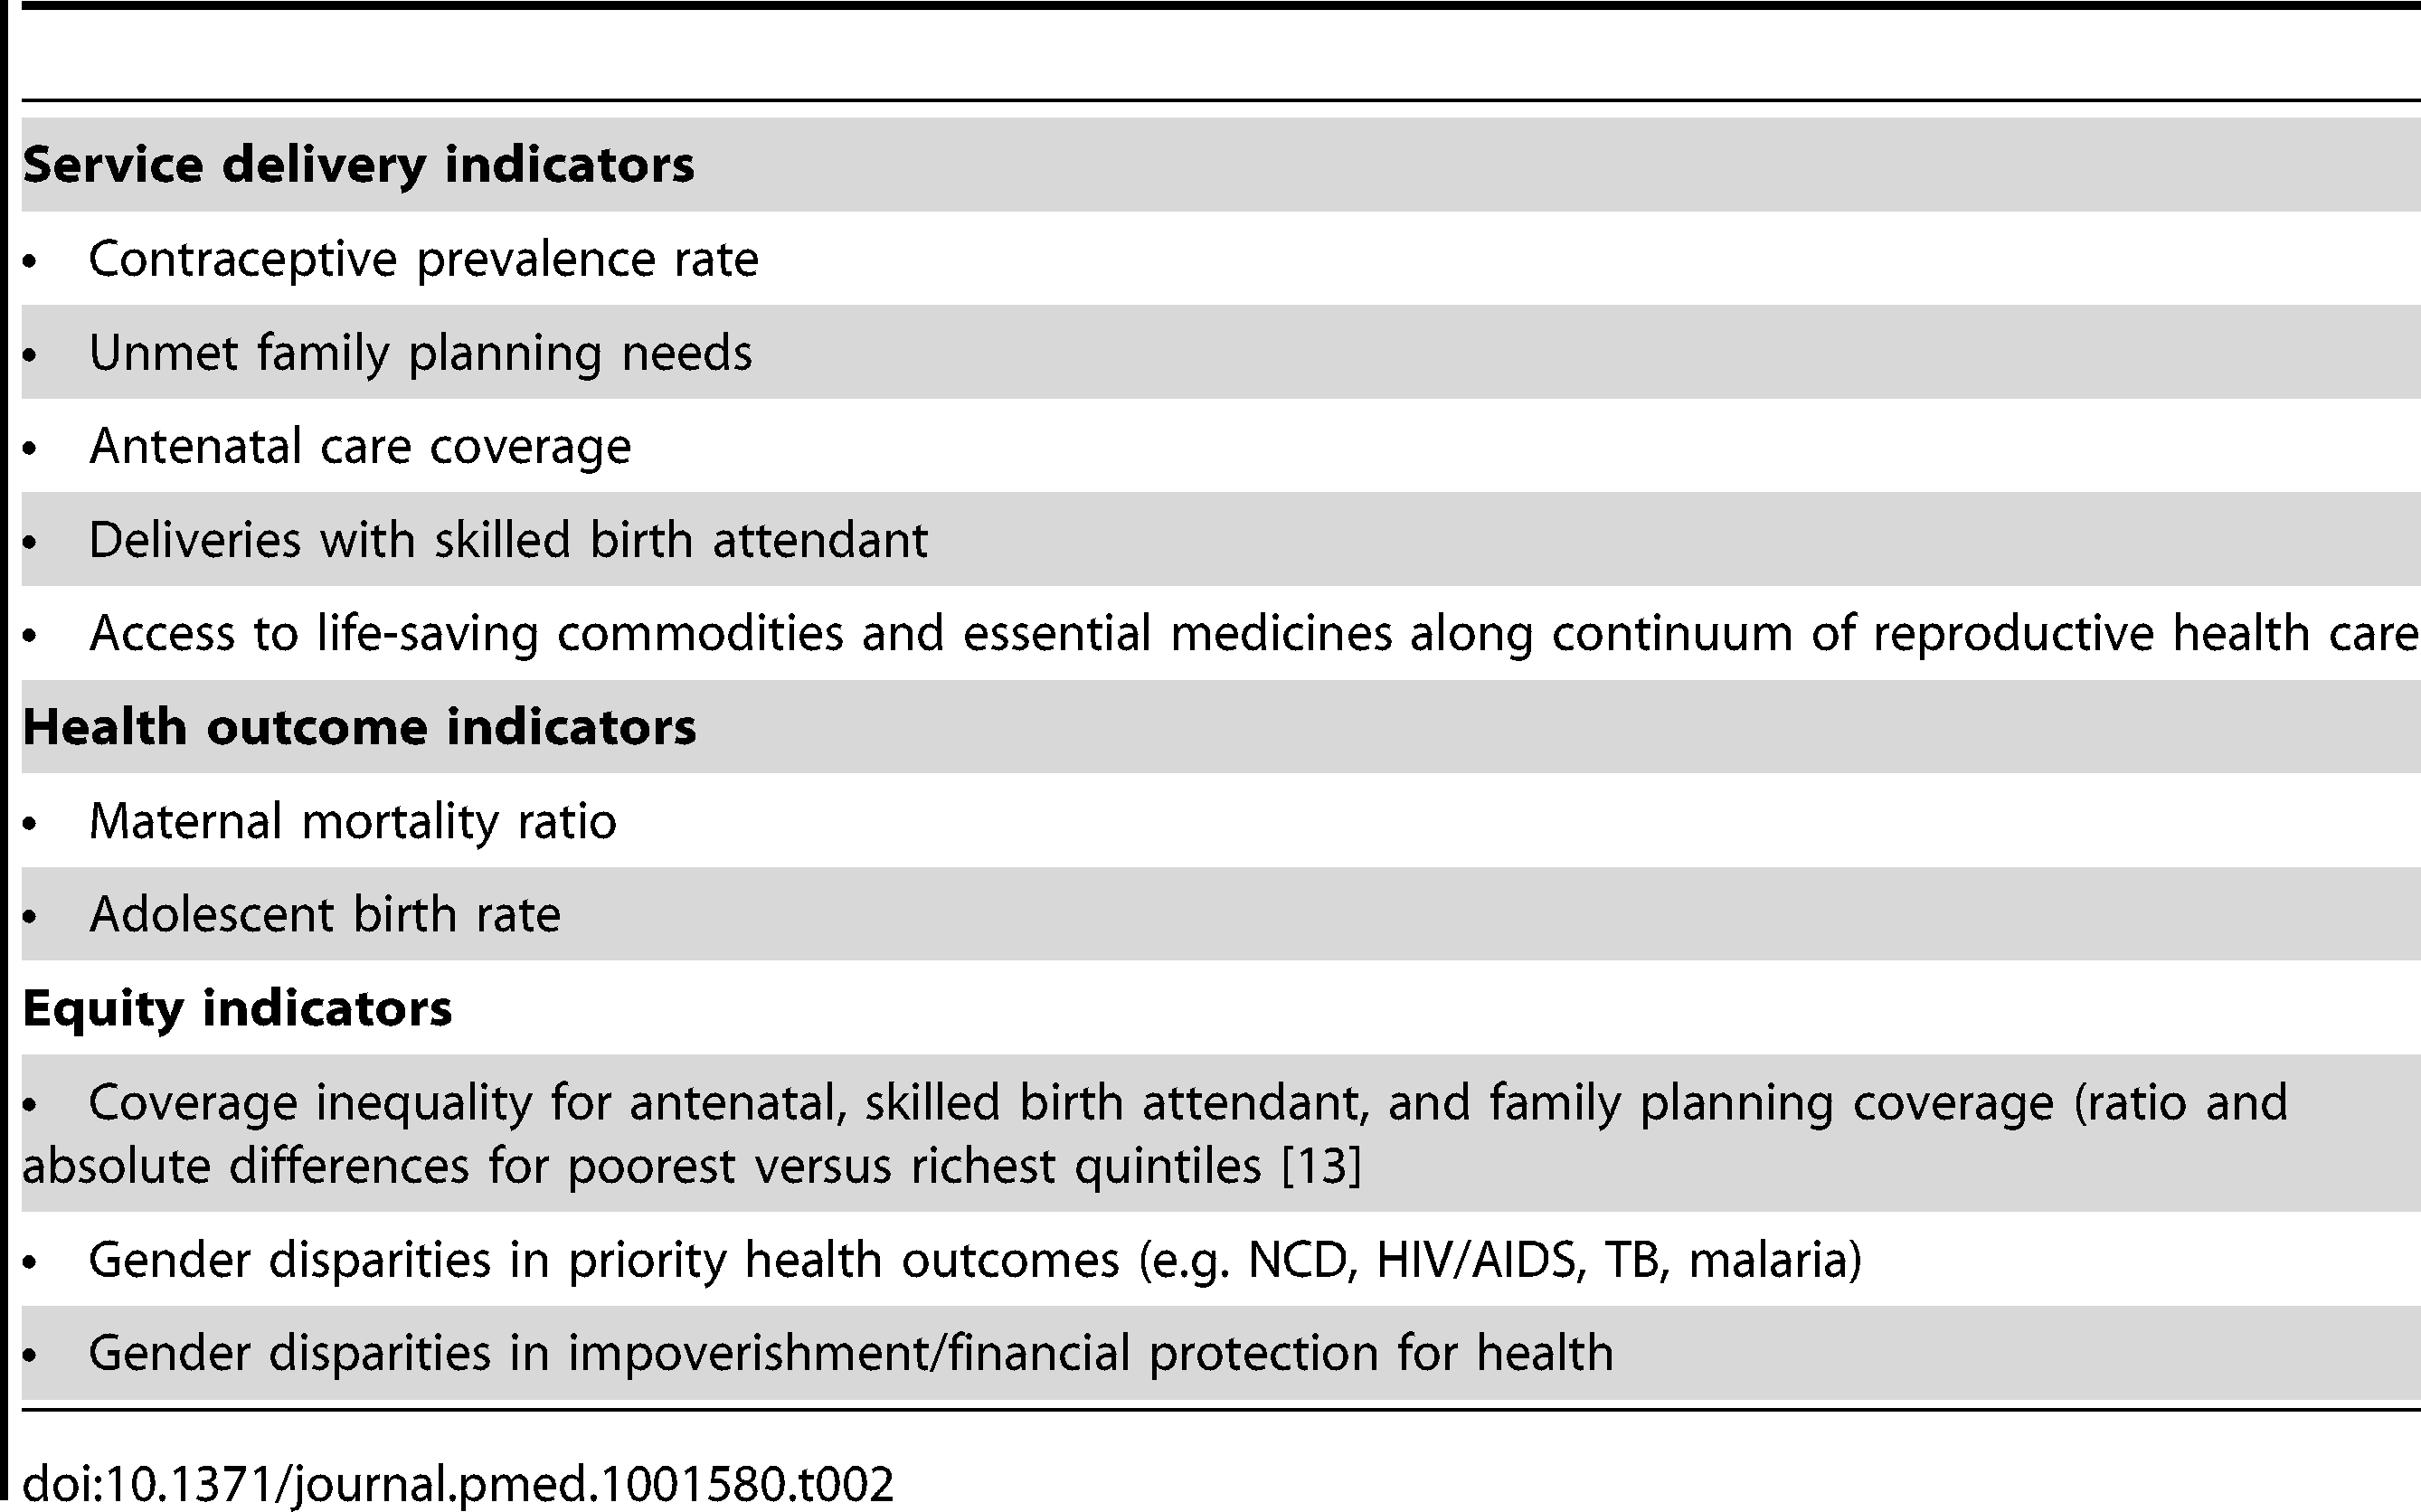 Examples of key service delivery and health outcome indicators for women's health.